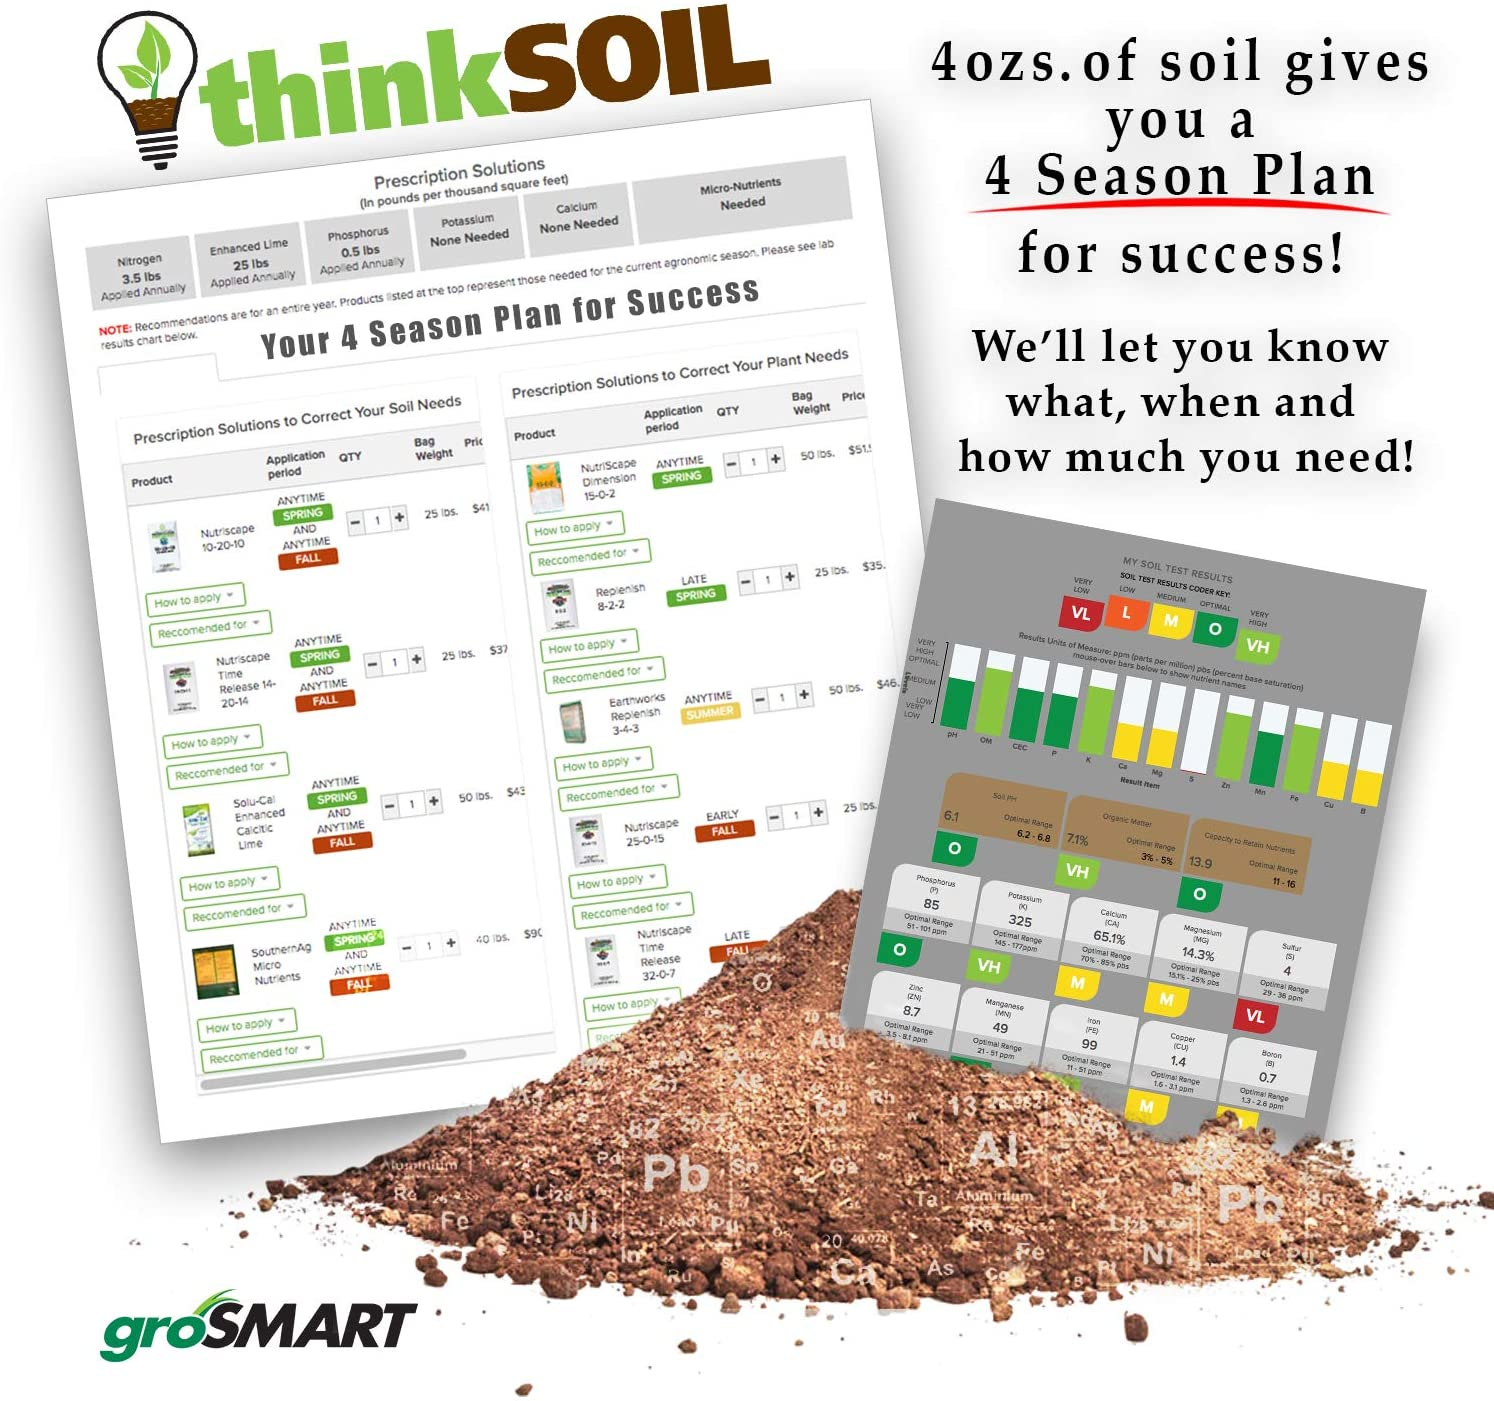 thinkSOIL Landscape Soil Test kit and 4 Season Nutrient Management Plan, Professional Soil Analysis Results for Healthy Landscape Soil All Year Long